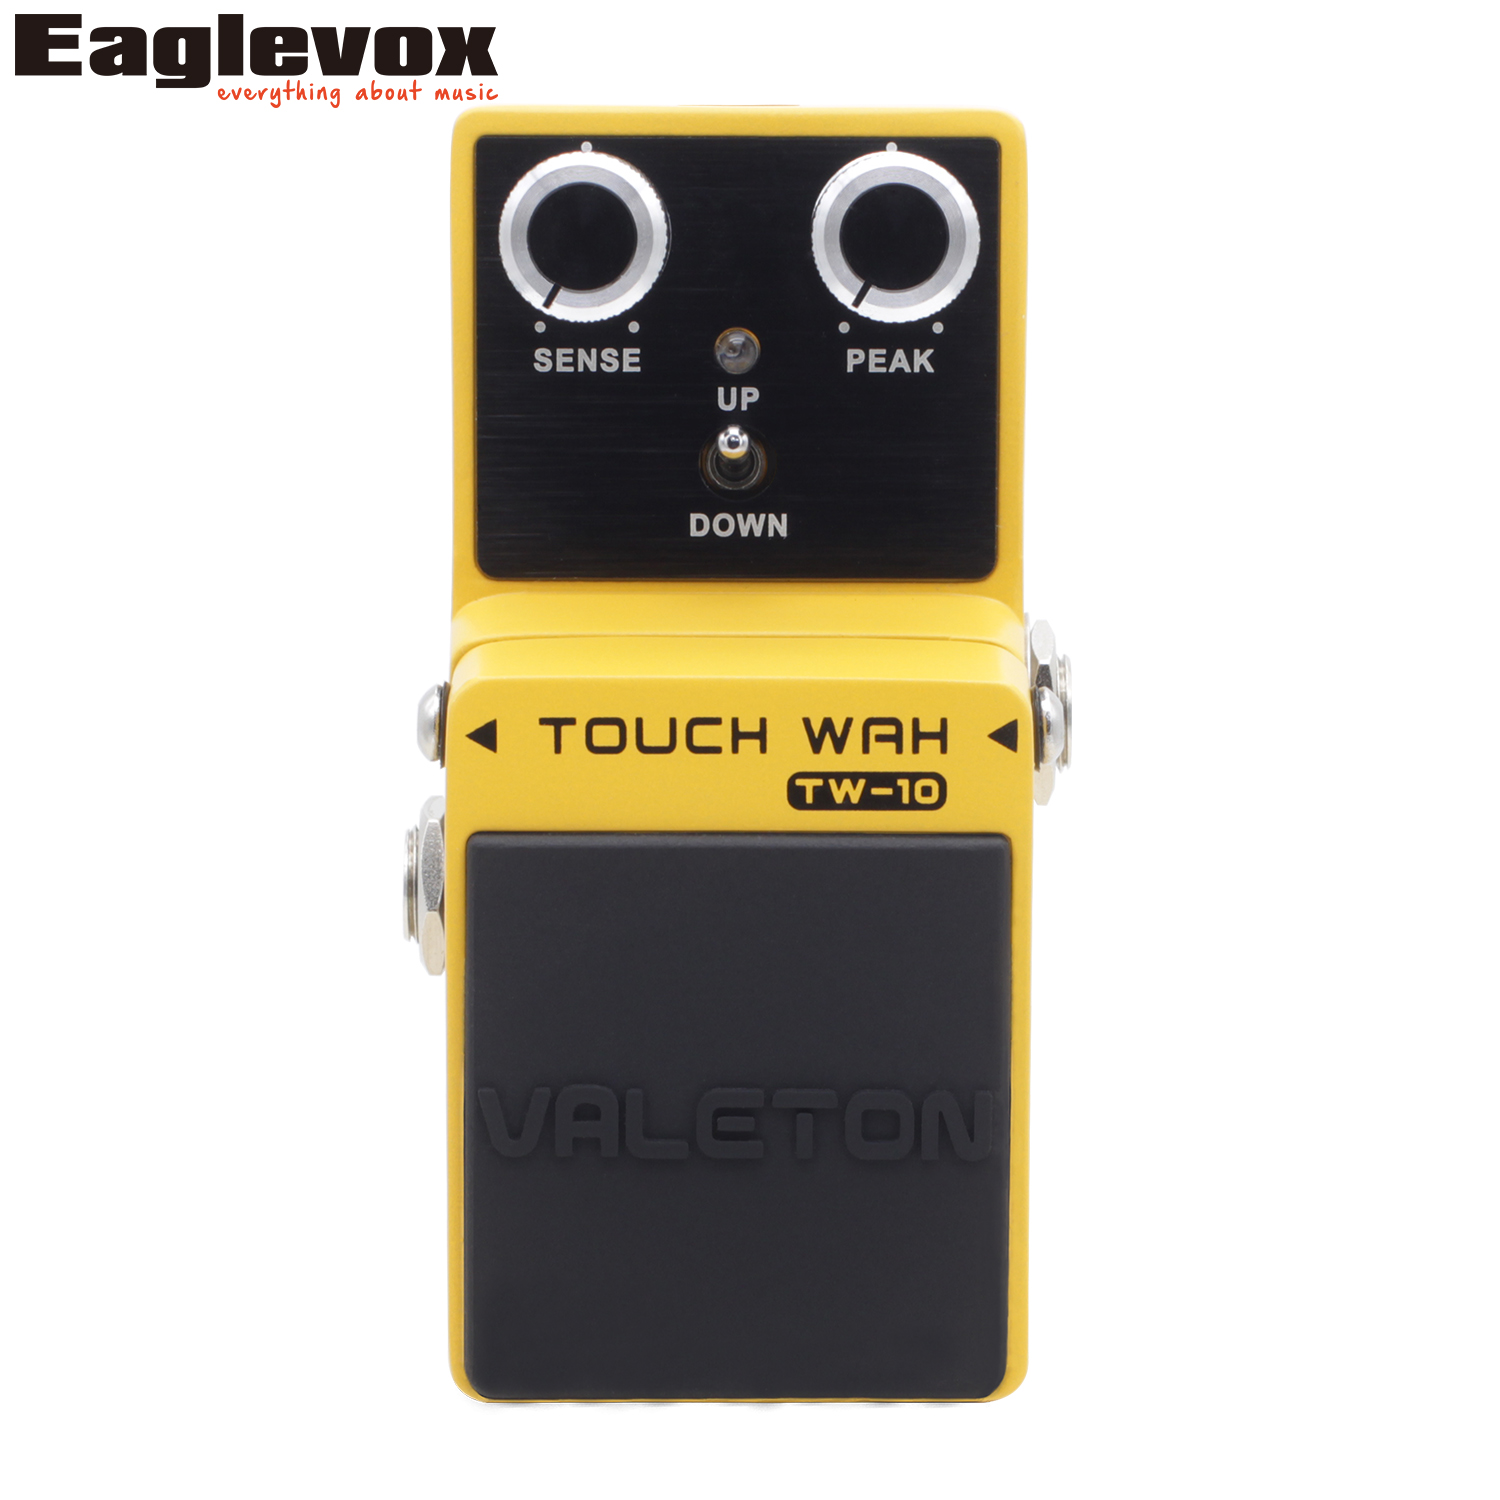 Valeton TW-10 Touch Wah Guitar Effect Pedal Buffer Bypass Analog Auto Wah Effects for Electric Guitar and Bass valeton fet preamp pedal effect guitar effect fp 10